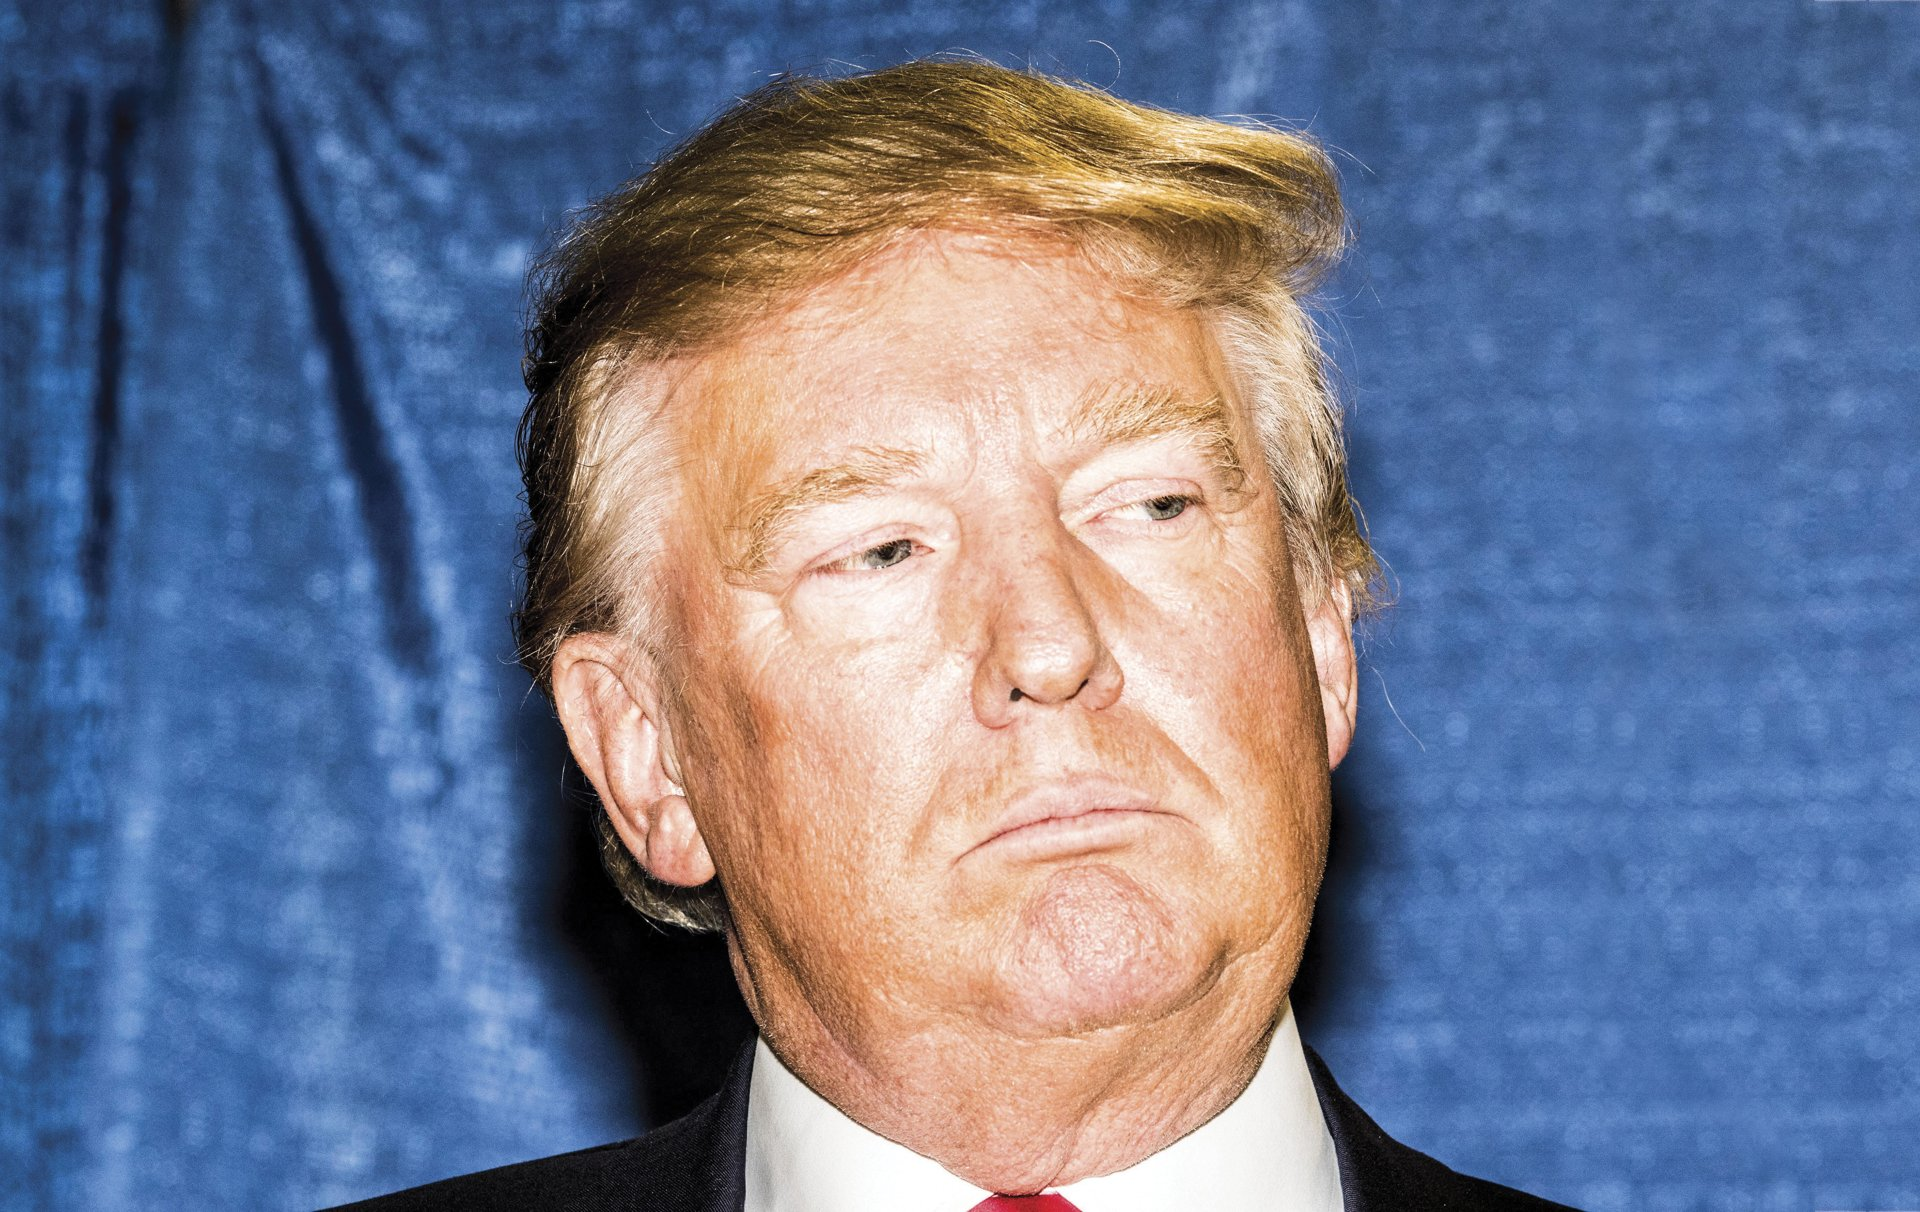 A Psychologist Analyzes Donald Trump's Personality - The ...